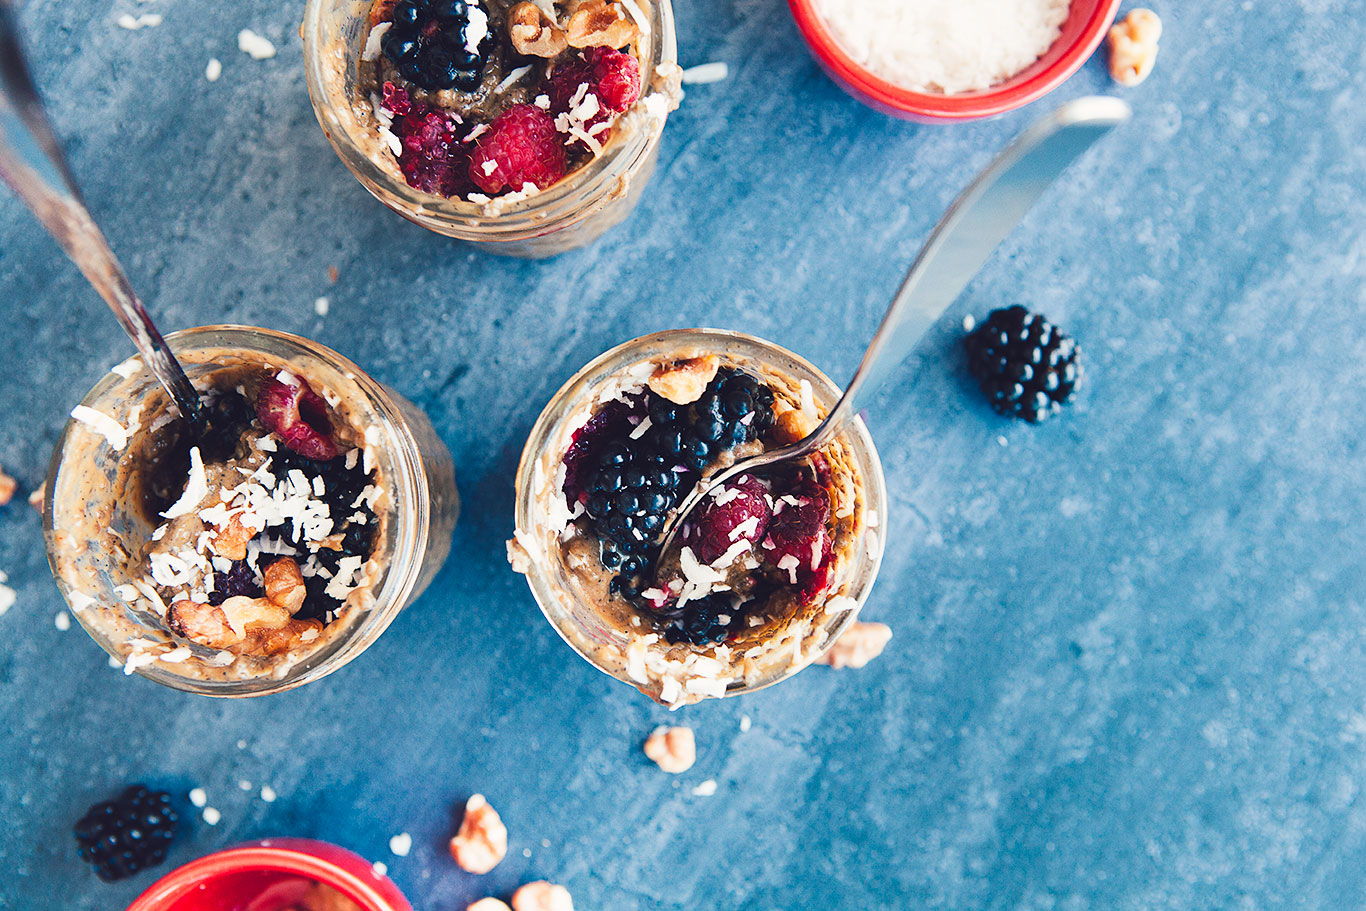 Watch Blueberry Chia Seed Pudding video